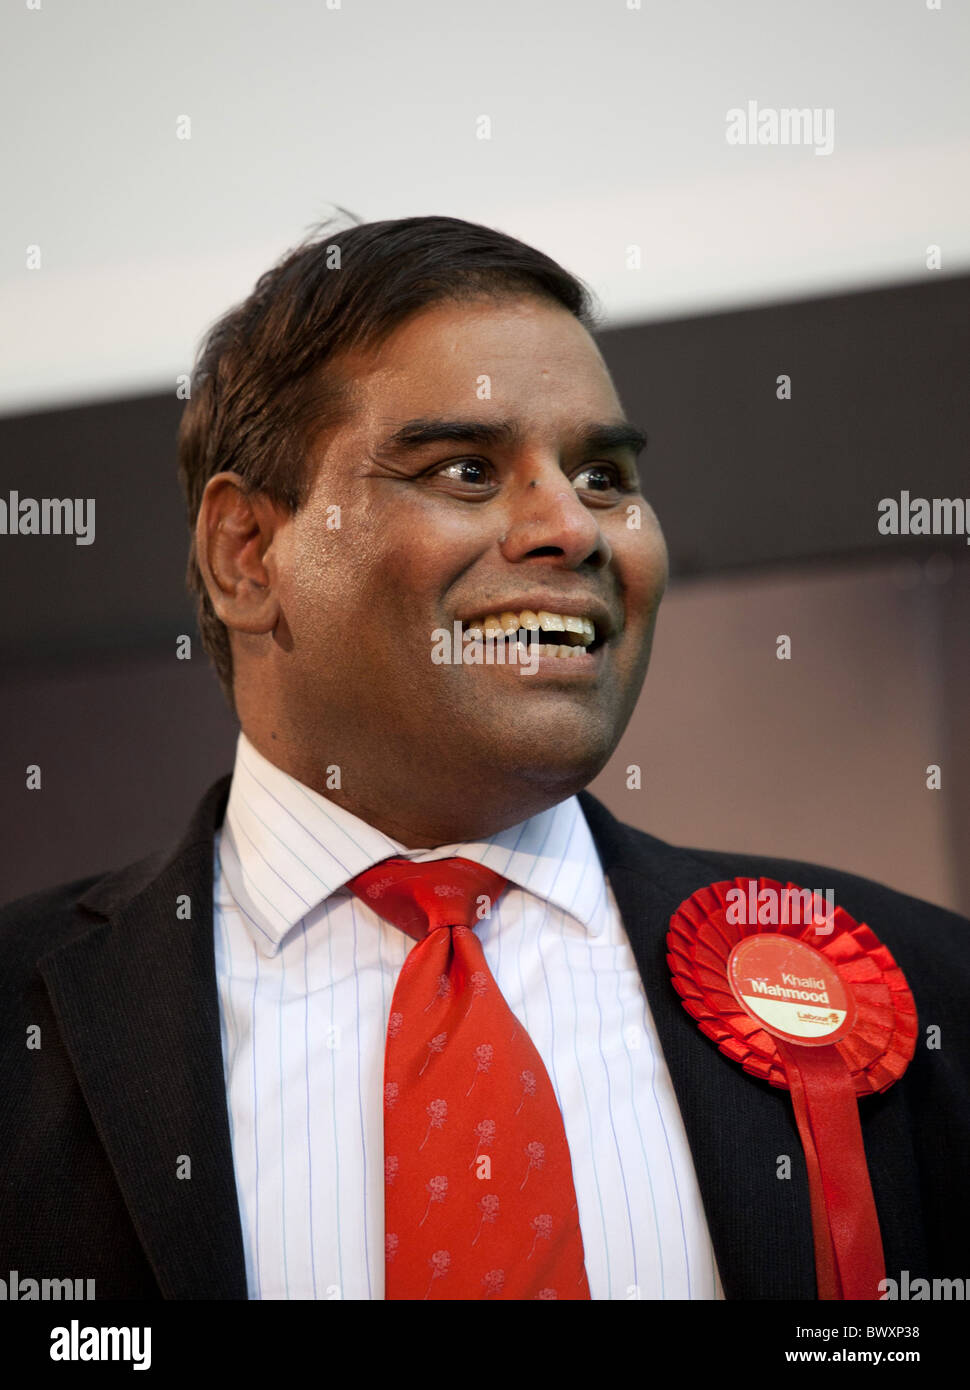 Member of Parliament for Perry Barr Birmingham Khalid Mahmood pictured after regaining his seat at the 2010 general - Stock Image